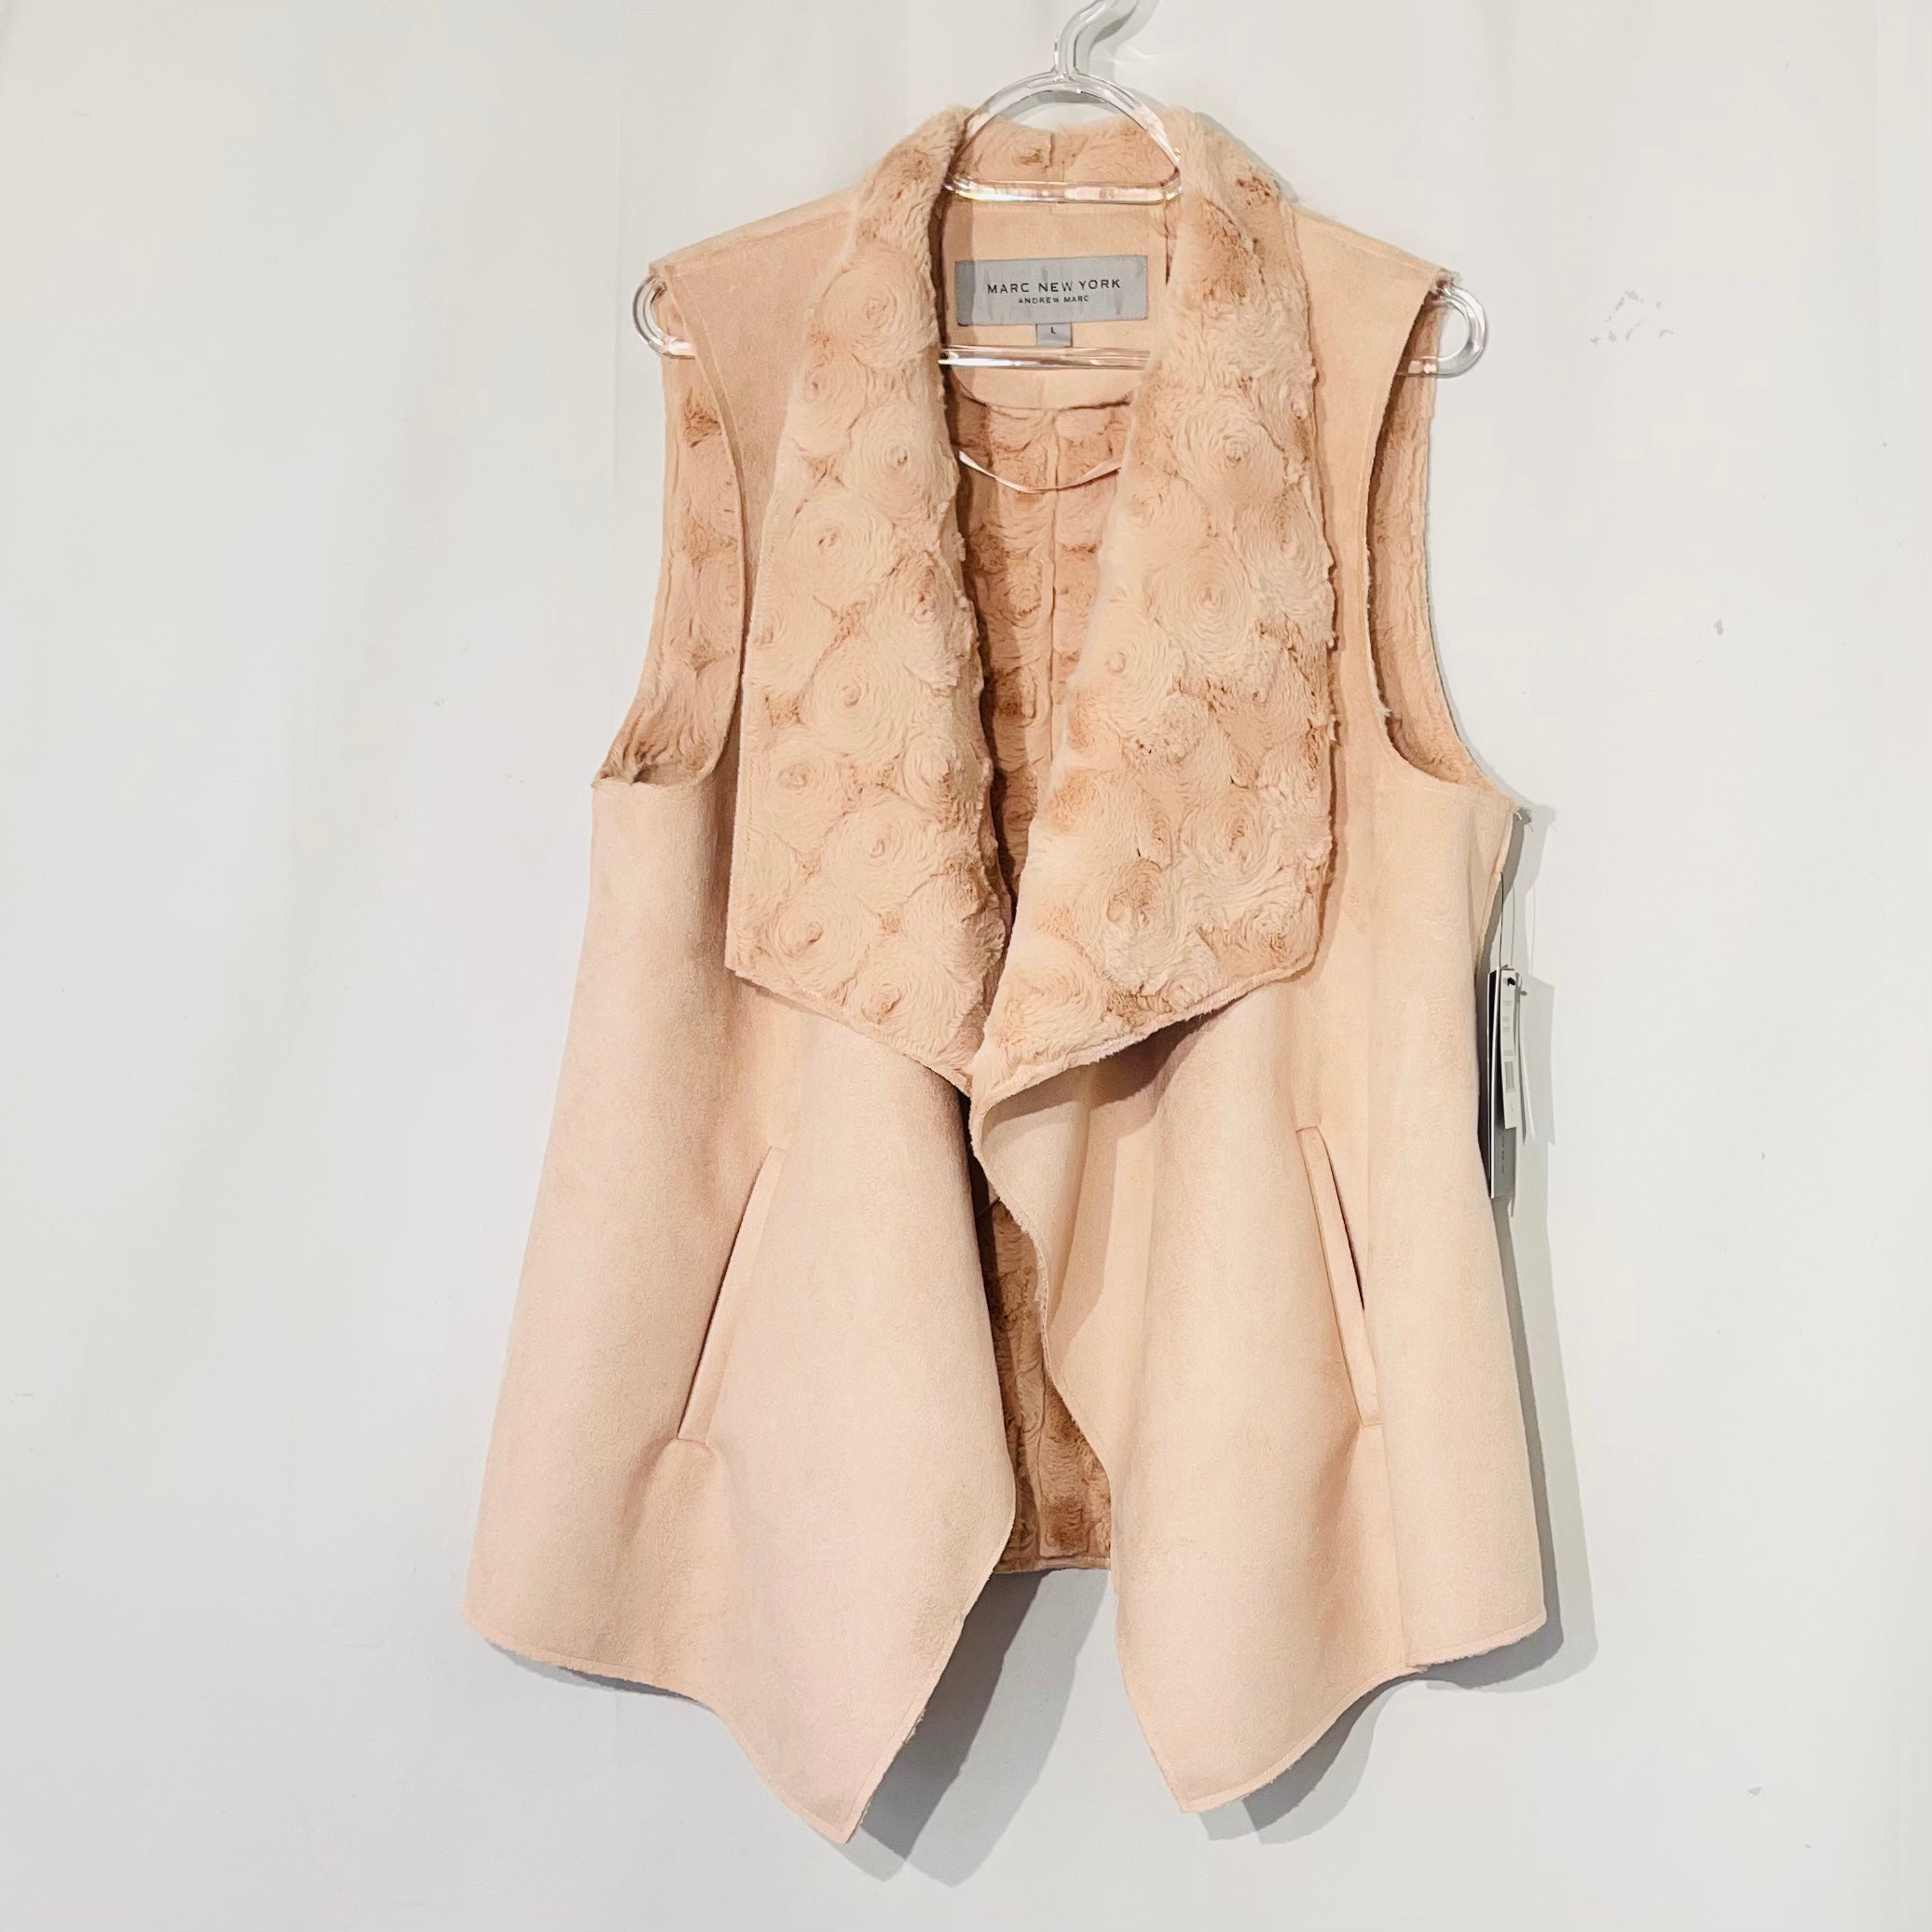 Primary Photo - BRAND: ANDREW MARC <BR>STYLE: VEST <BR>COLOR: LIGHT PINK <BR>SIZE: L <BR>SKU: 262-26275-73961